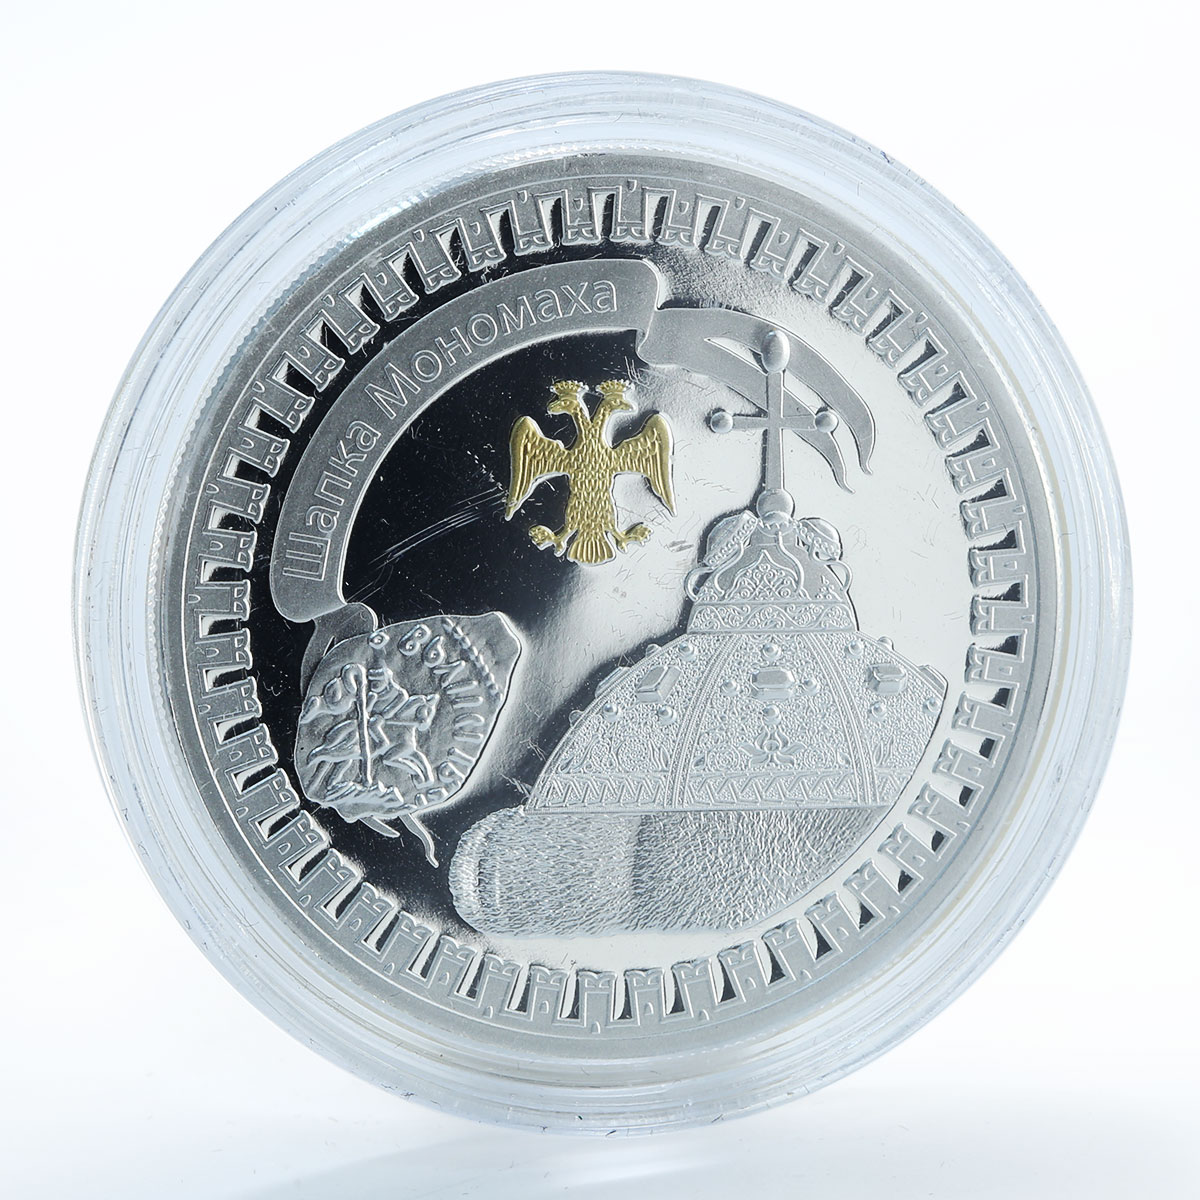 Liberia 5 dollars Hat of Monomakh Russian Empire silver coin 2011